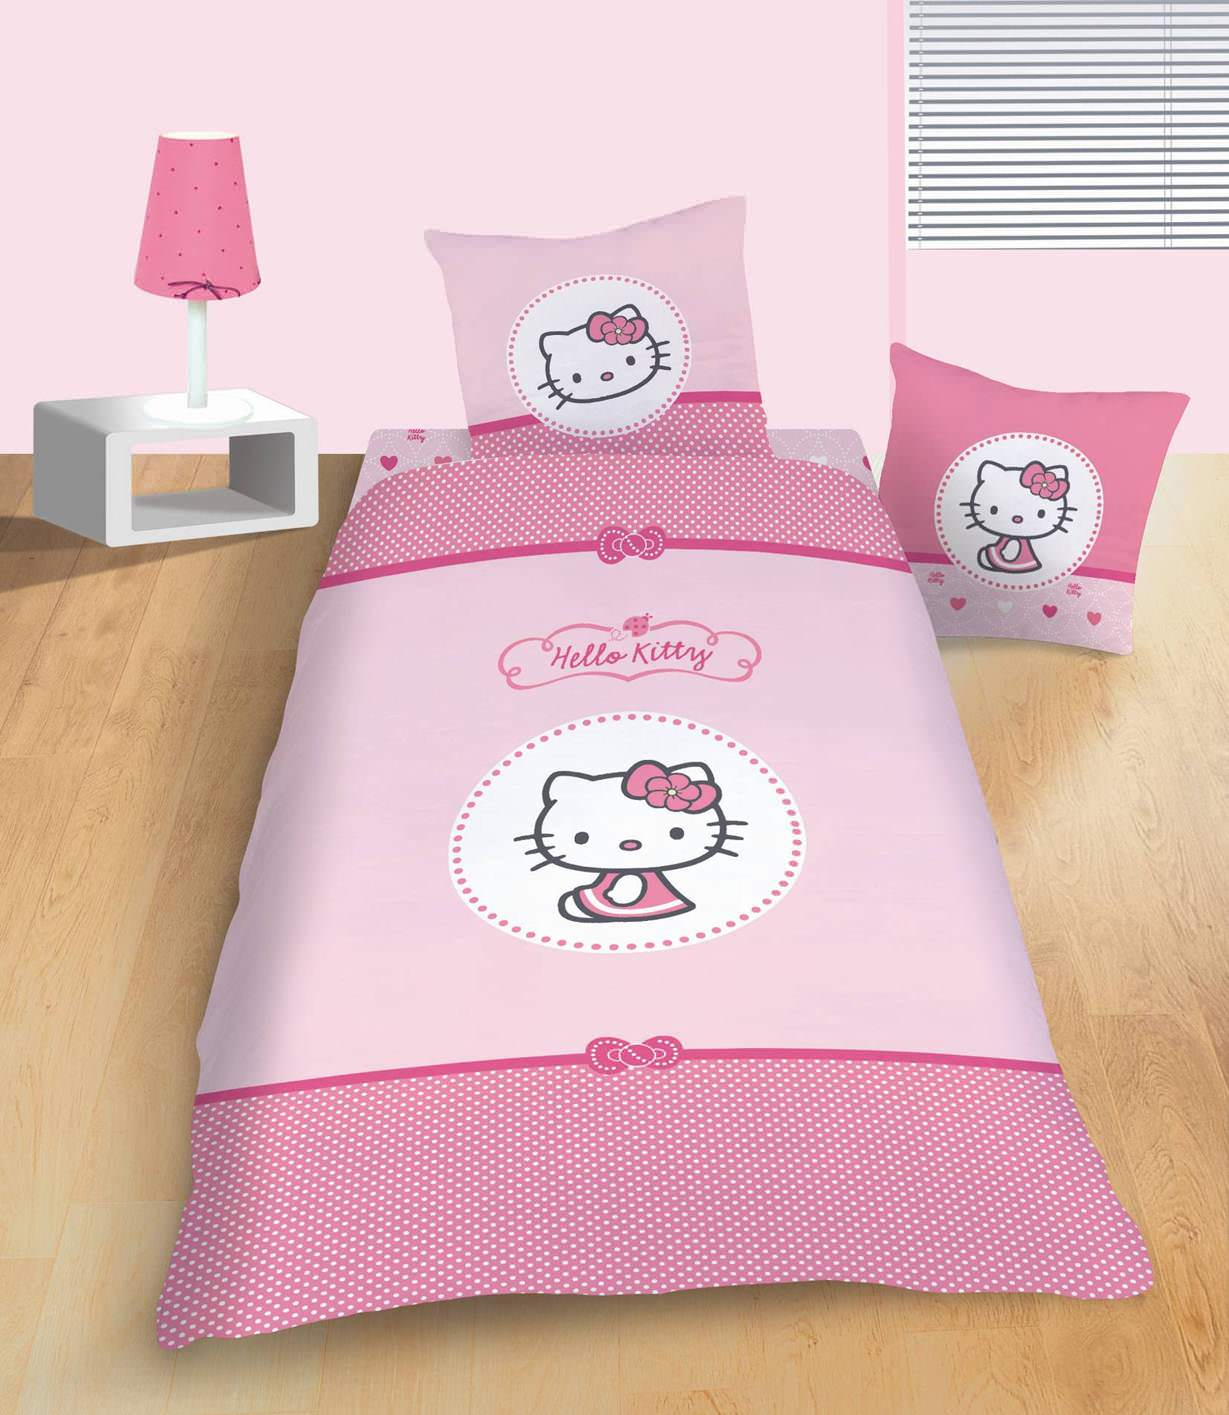 housse de couette hello kitty 140 x 200 cm parure de lit mathilda decokids. Black Bedroom Furniture Sets. Home Design Ideas